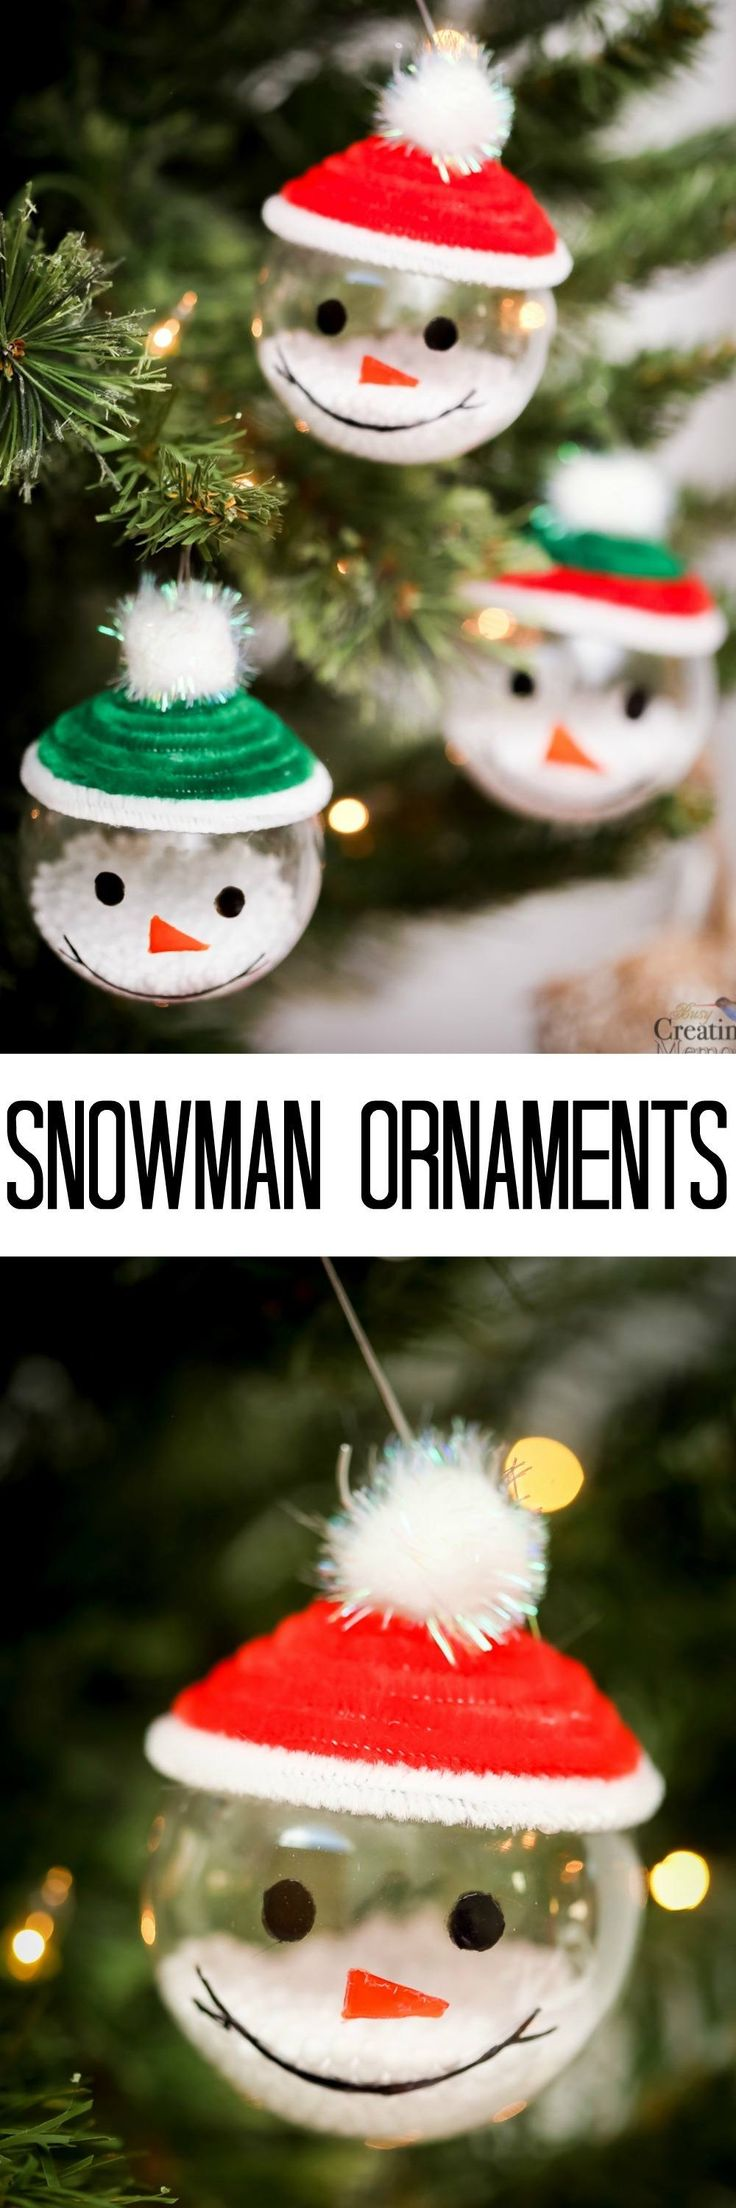 Snowman face ornament - Bring Winter Indoors By Decorating With These Easy Snowman Ornaments About 5 Minutes To Make